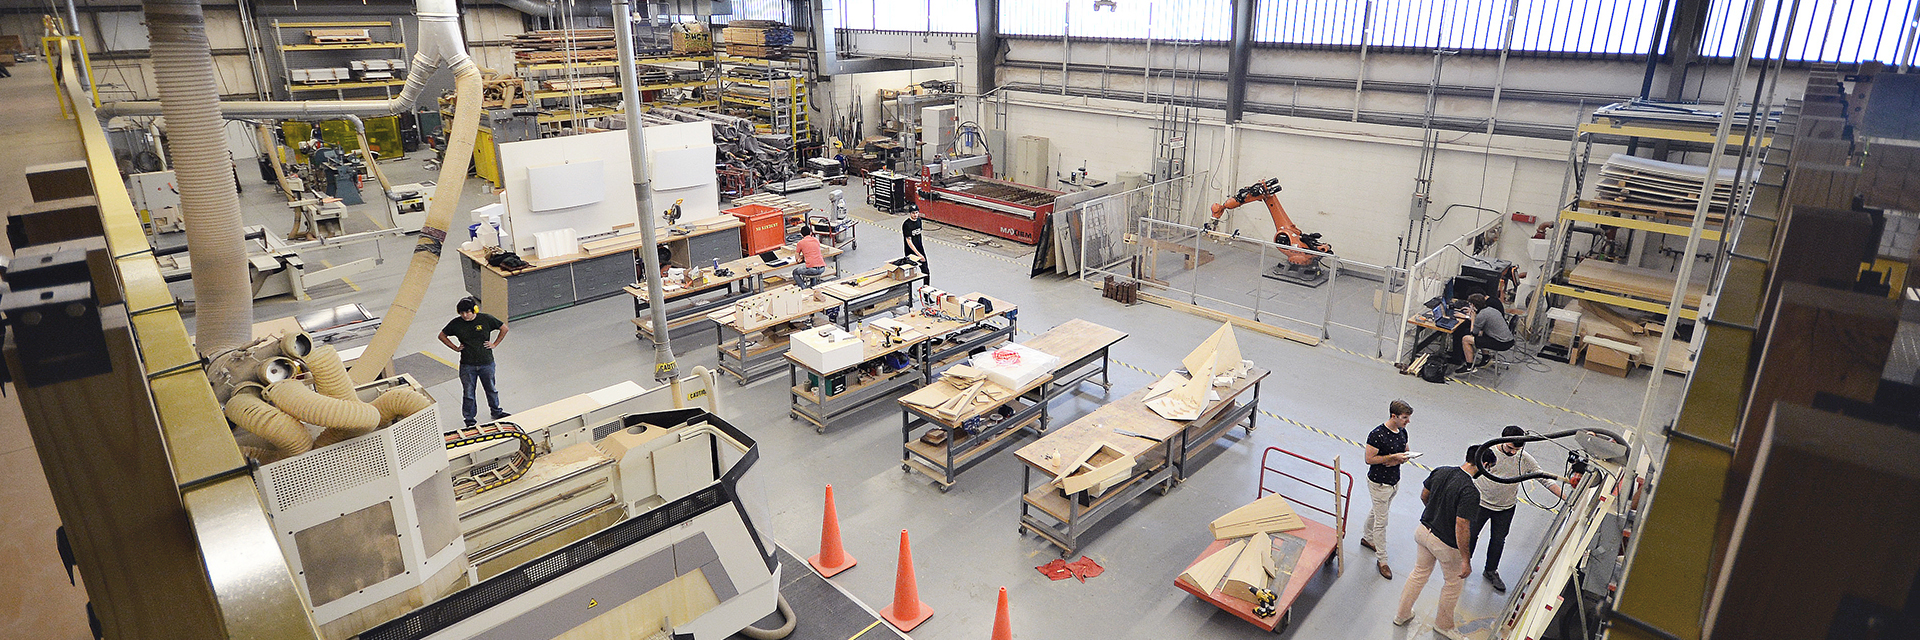 Overhead image of the main floor of the Digital Fabrication Lab